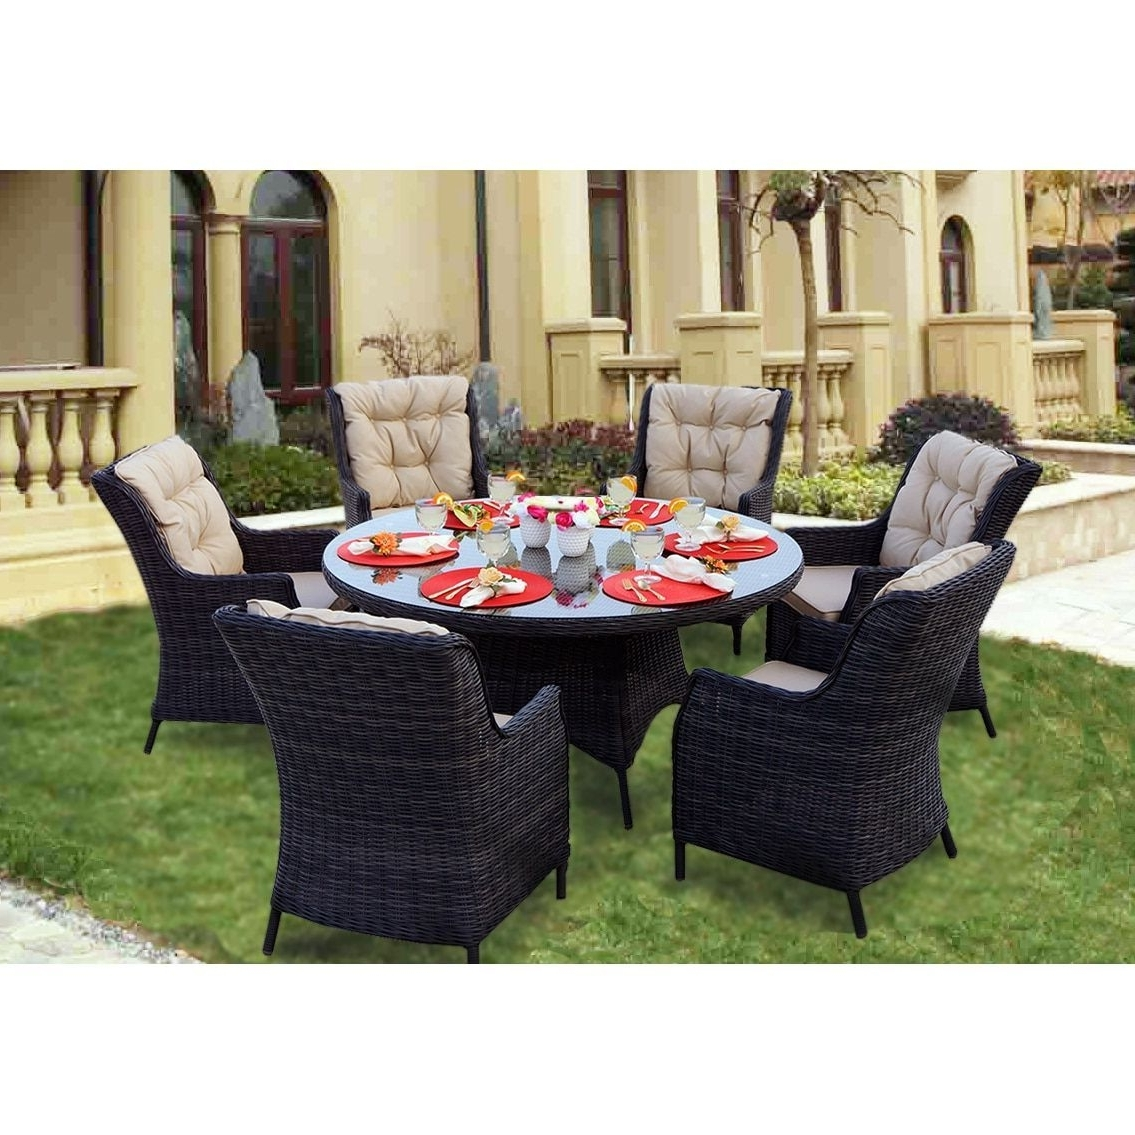 Valencia 60 Inch Round Dining Tables Regarding Popular Darlee Valencia Charcoal (Grey) Wicker 7 Piece Dining Set With (View 21 of 25)